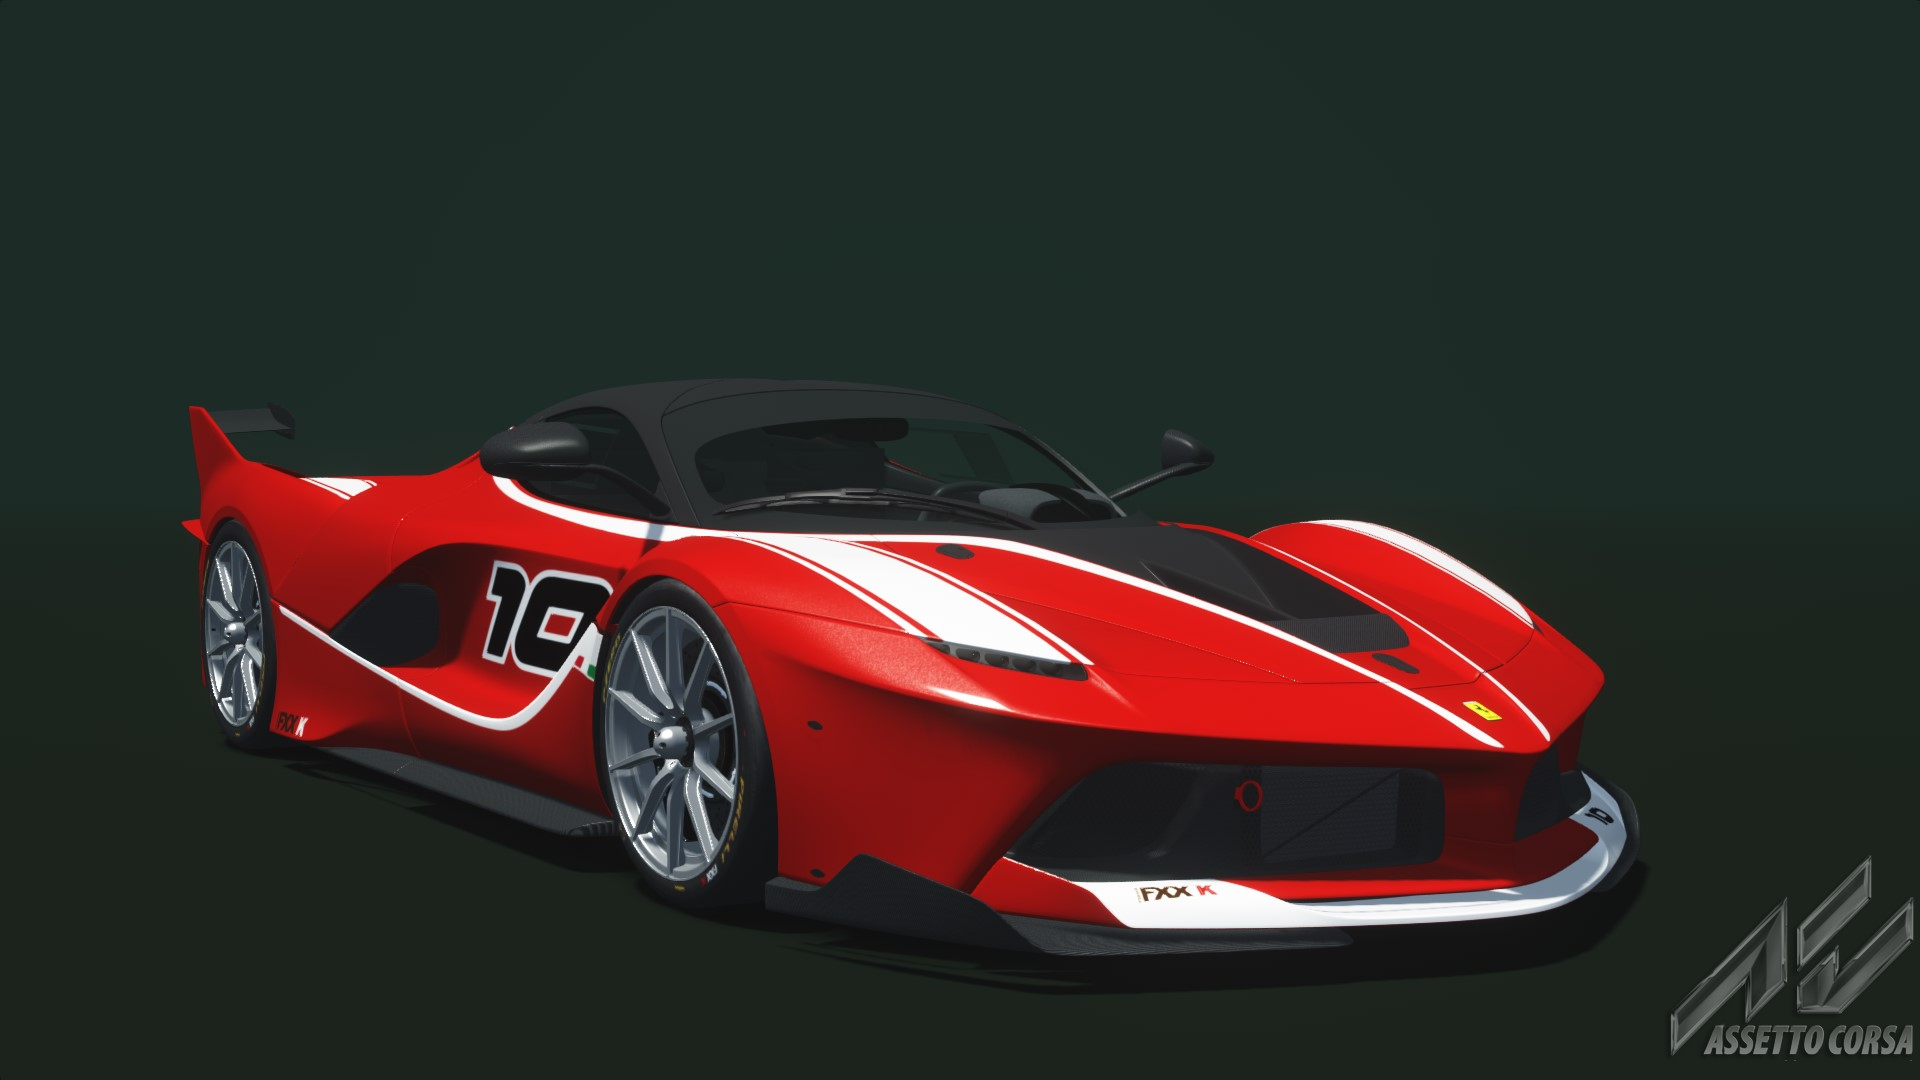 ferrari fxx k - ferrari - car detail - assetto corsa database